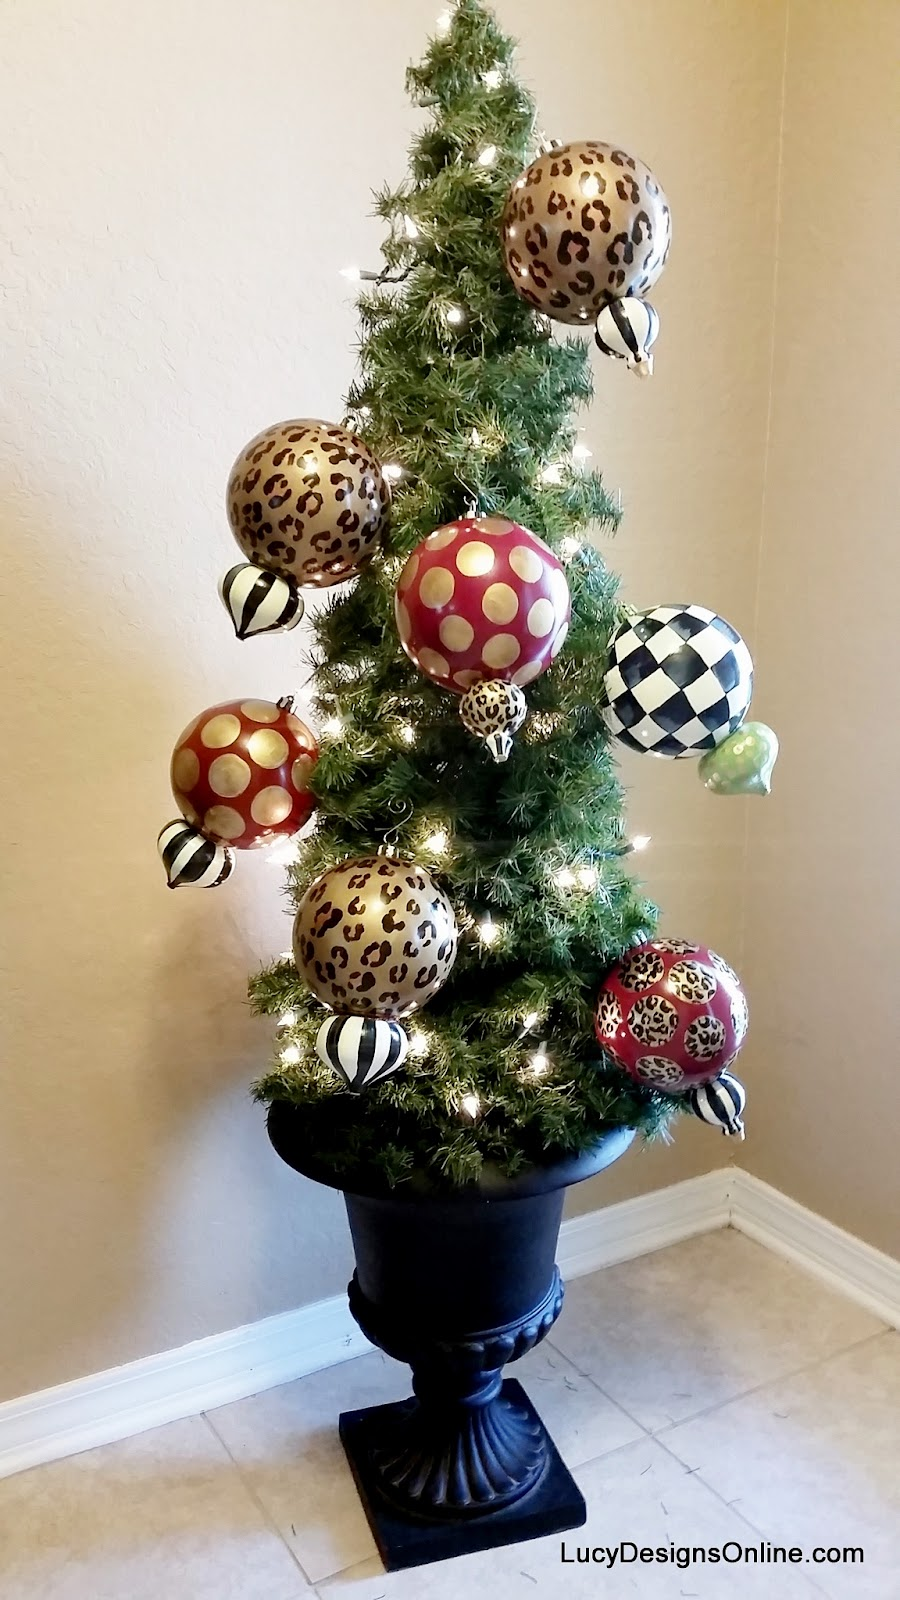 tomato cage topiary christmas tree with hand painted ornaments - Topiary Christmas Decorations